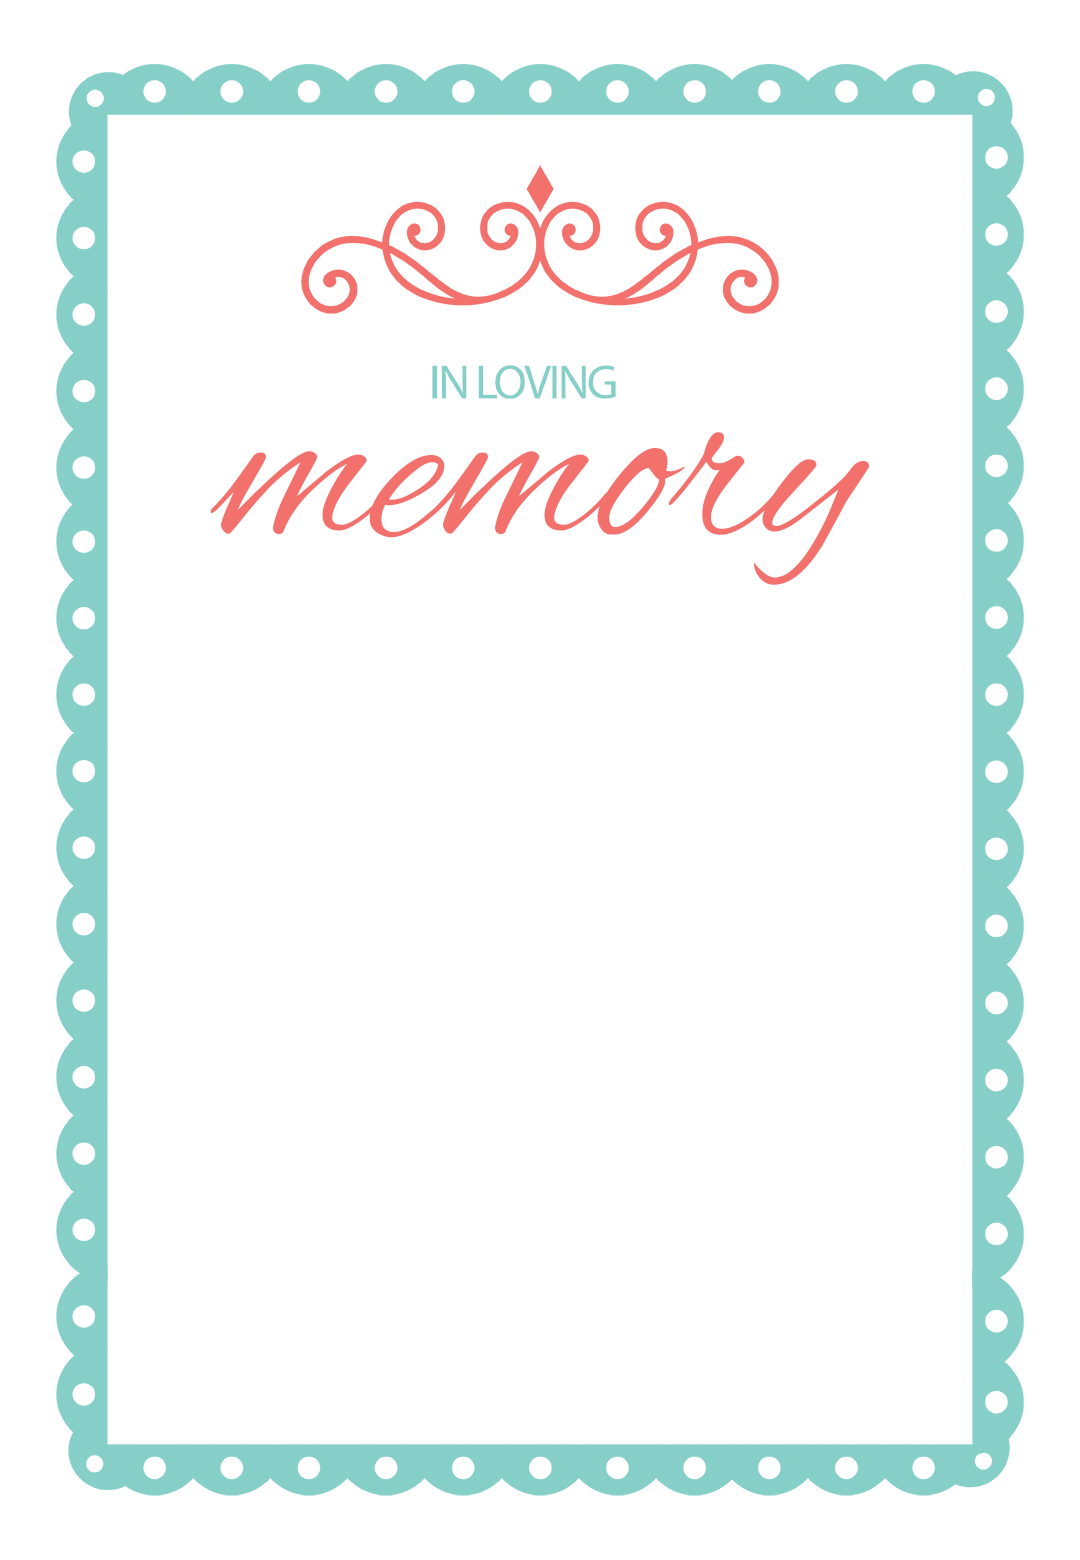 In Loving Memory Memorial Card Template Free Greetings Island Card Templates Free Memorial Cards Card Template